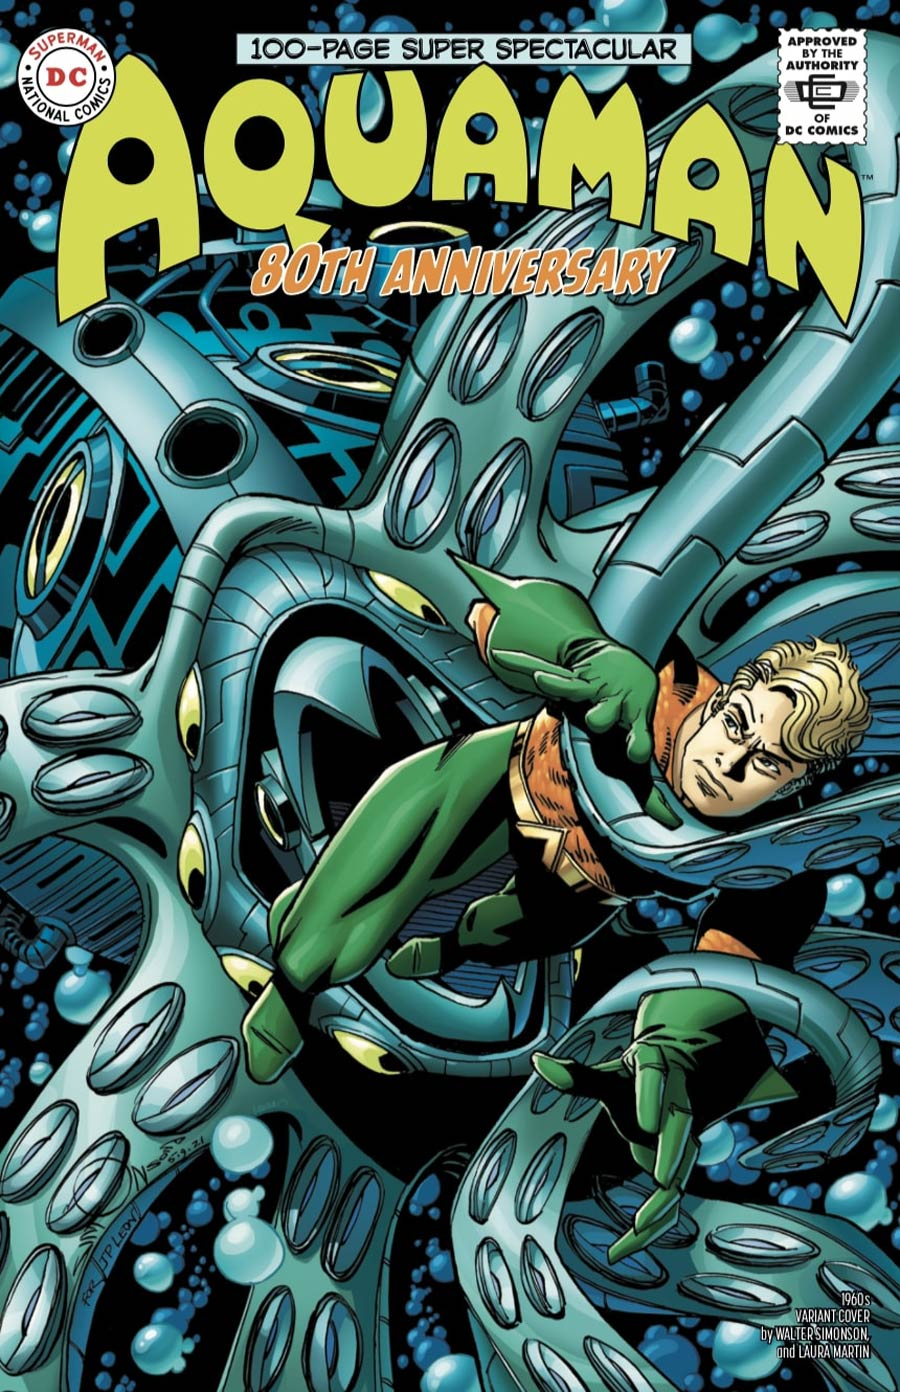 Aquaman 80th Anniversary 100-Page Super Spectacular #1 (One Shot) Cover D Variant Walter Simonson 1960s Cover